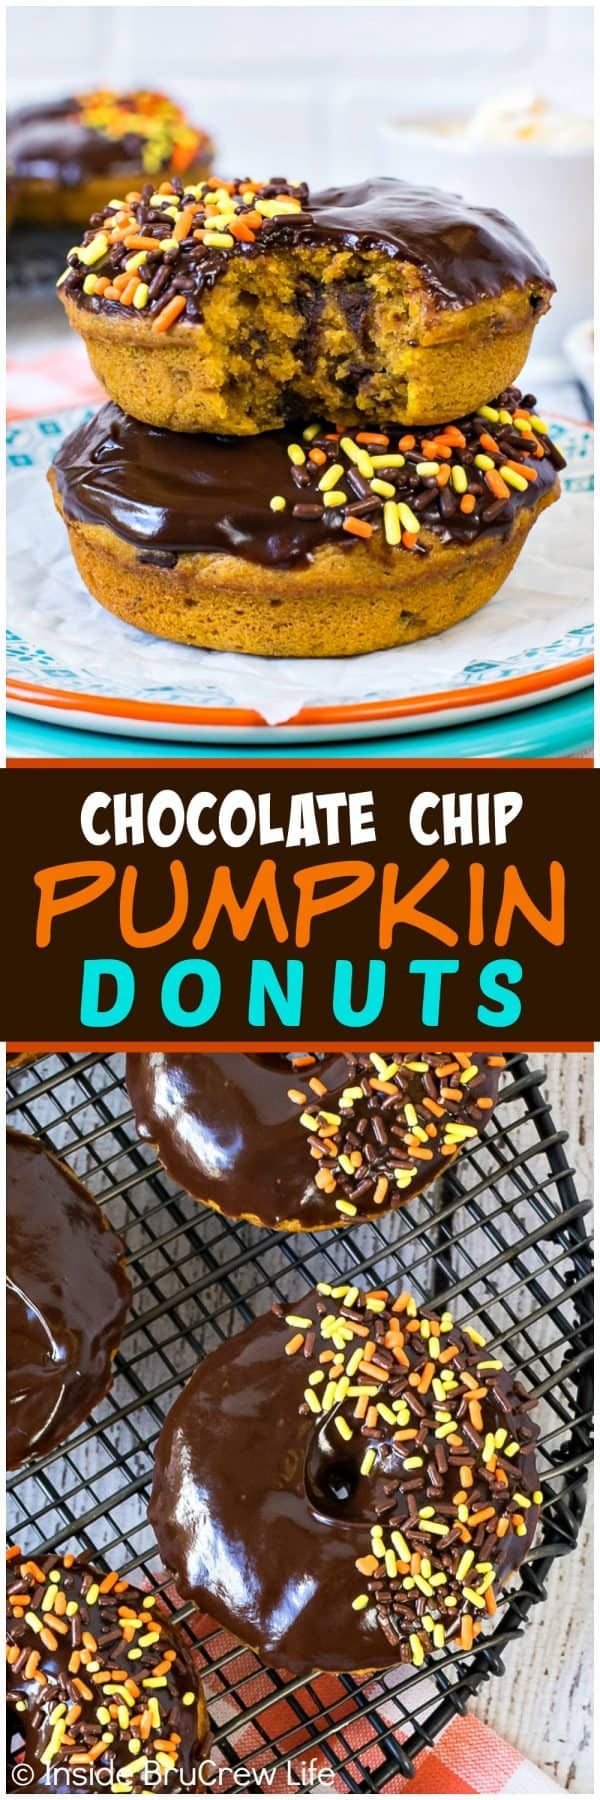 Chocolate Chip Pumpkin Donuts - these soft dense pumpkin donuts are loaded with chocolate goodness on top and inside. Great fall recipe for breakfast or after school snacks. #donuts #pumpkin #fall